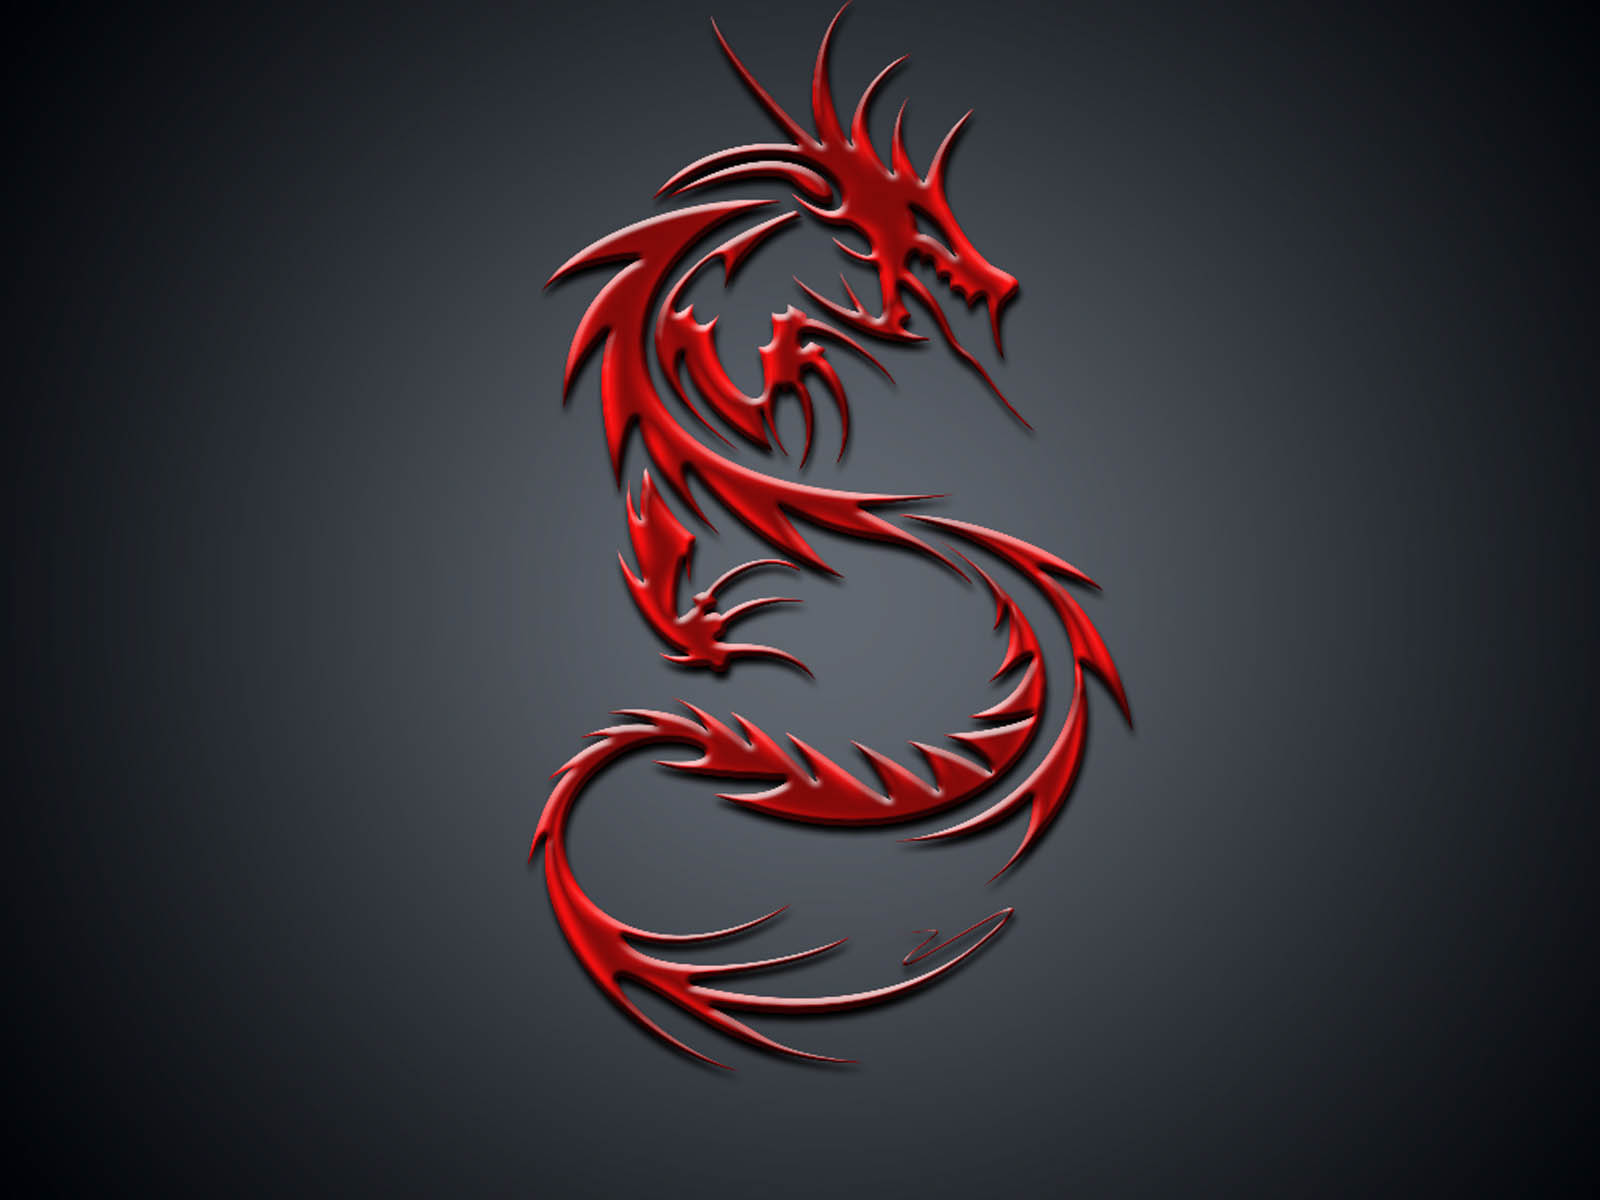 wallpaper Dragon Wallpapers 1600x1200